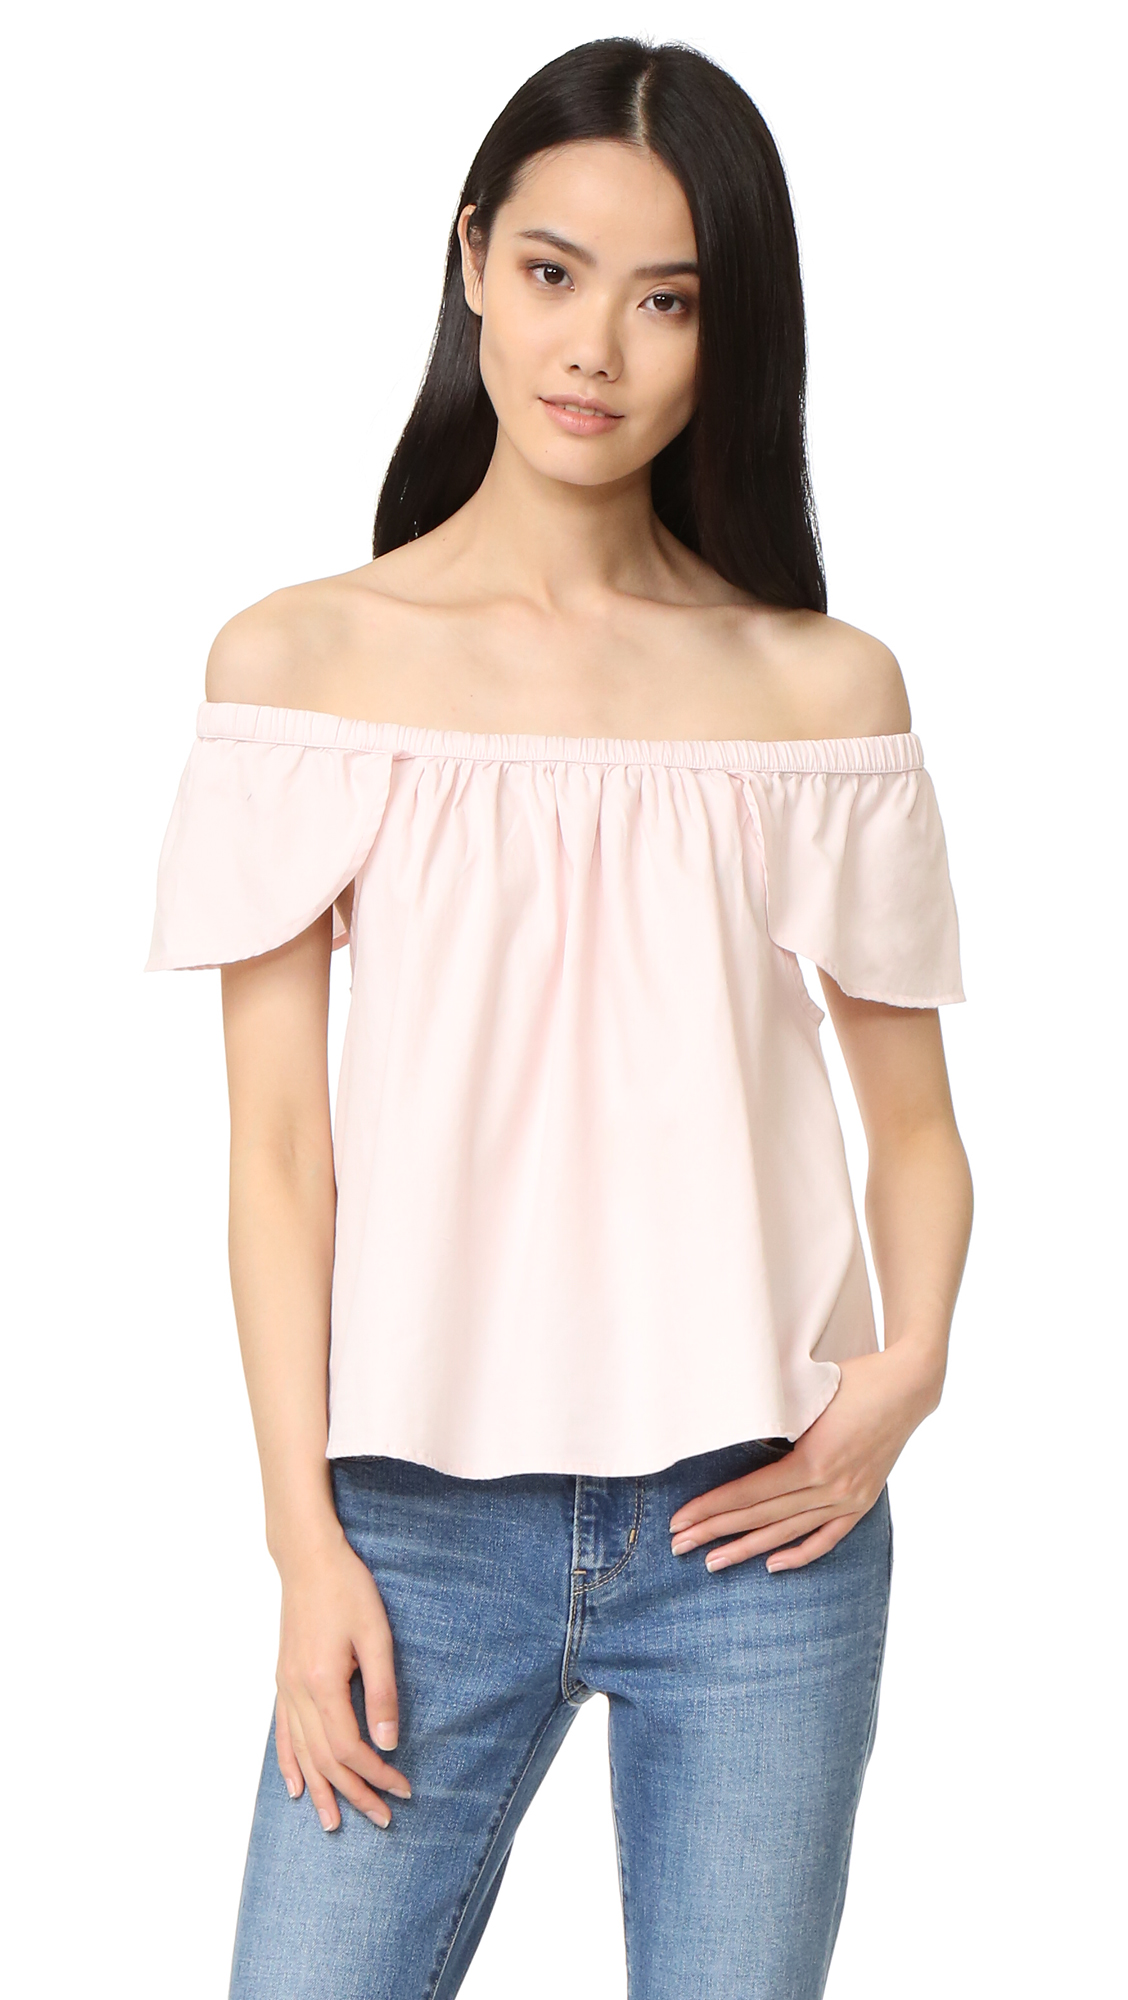 An off shoulder Sincerely Jules blouse with flounced flutter sleeves. Fabric: Plain weave. 100% cotton. Wash cold or dry clean. Imported, Turkey. Measurements Length: 16.25in / 41cm, from center back Measurements from size S. Available sizes: L,M,